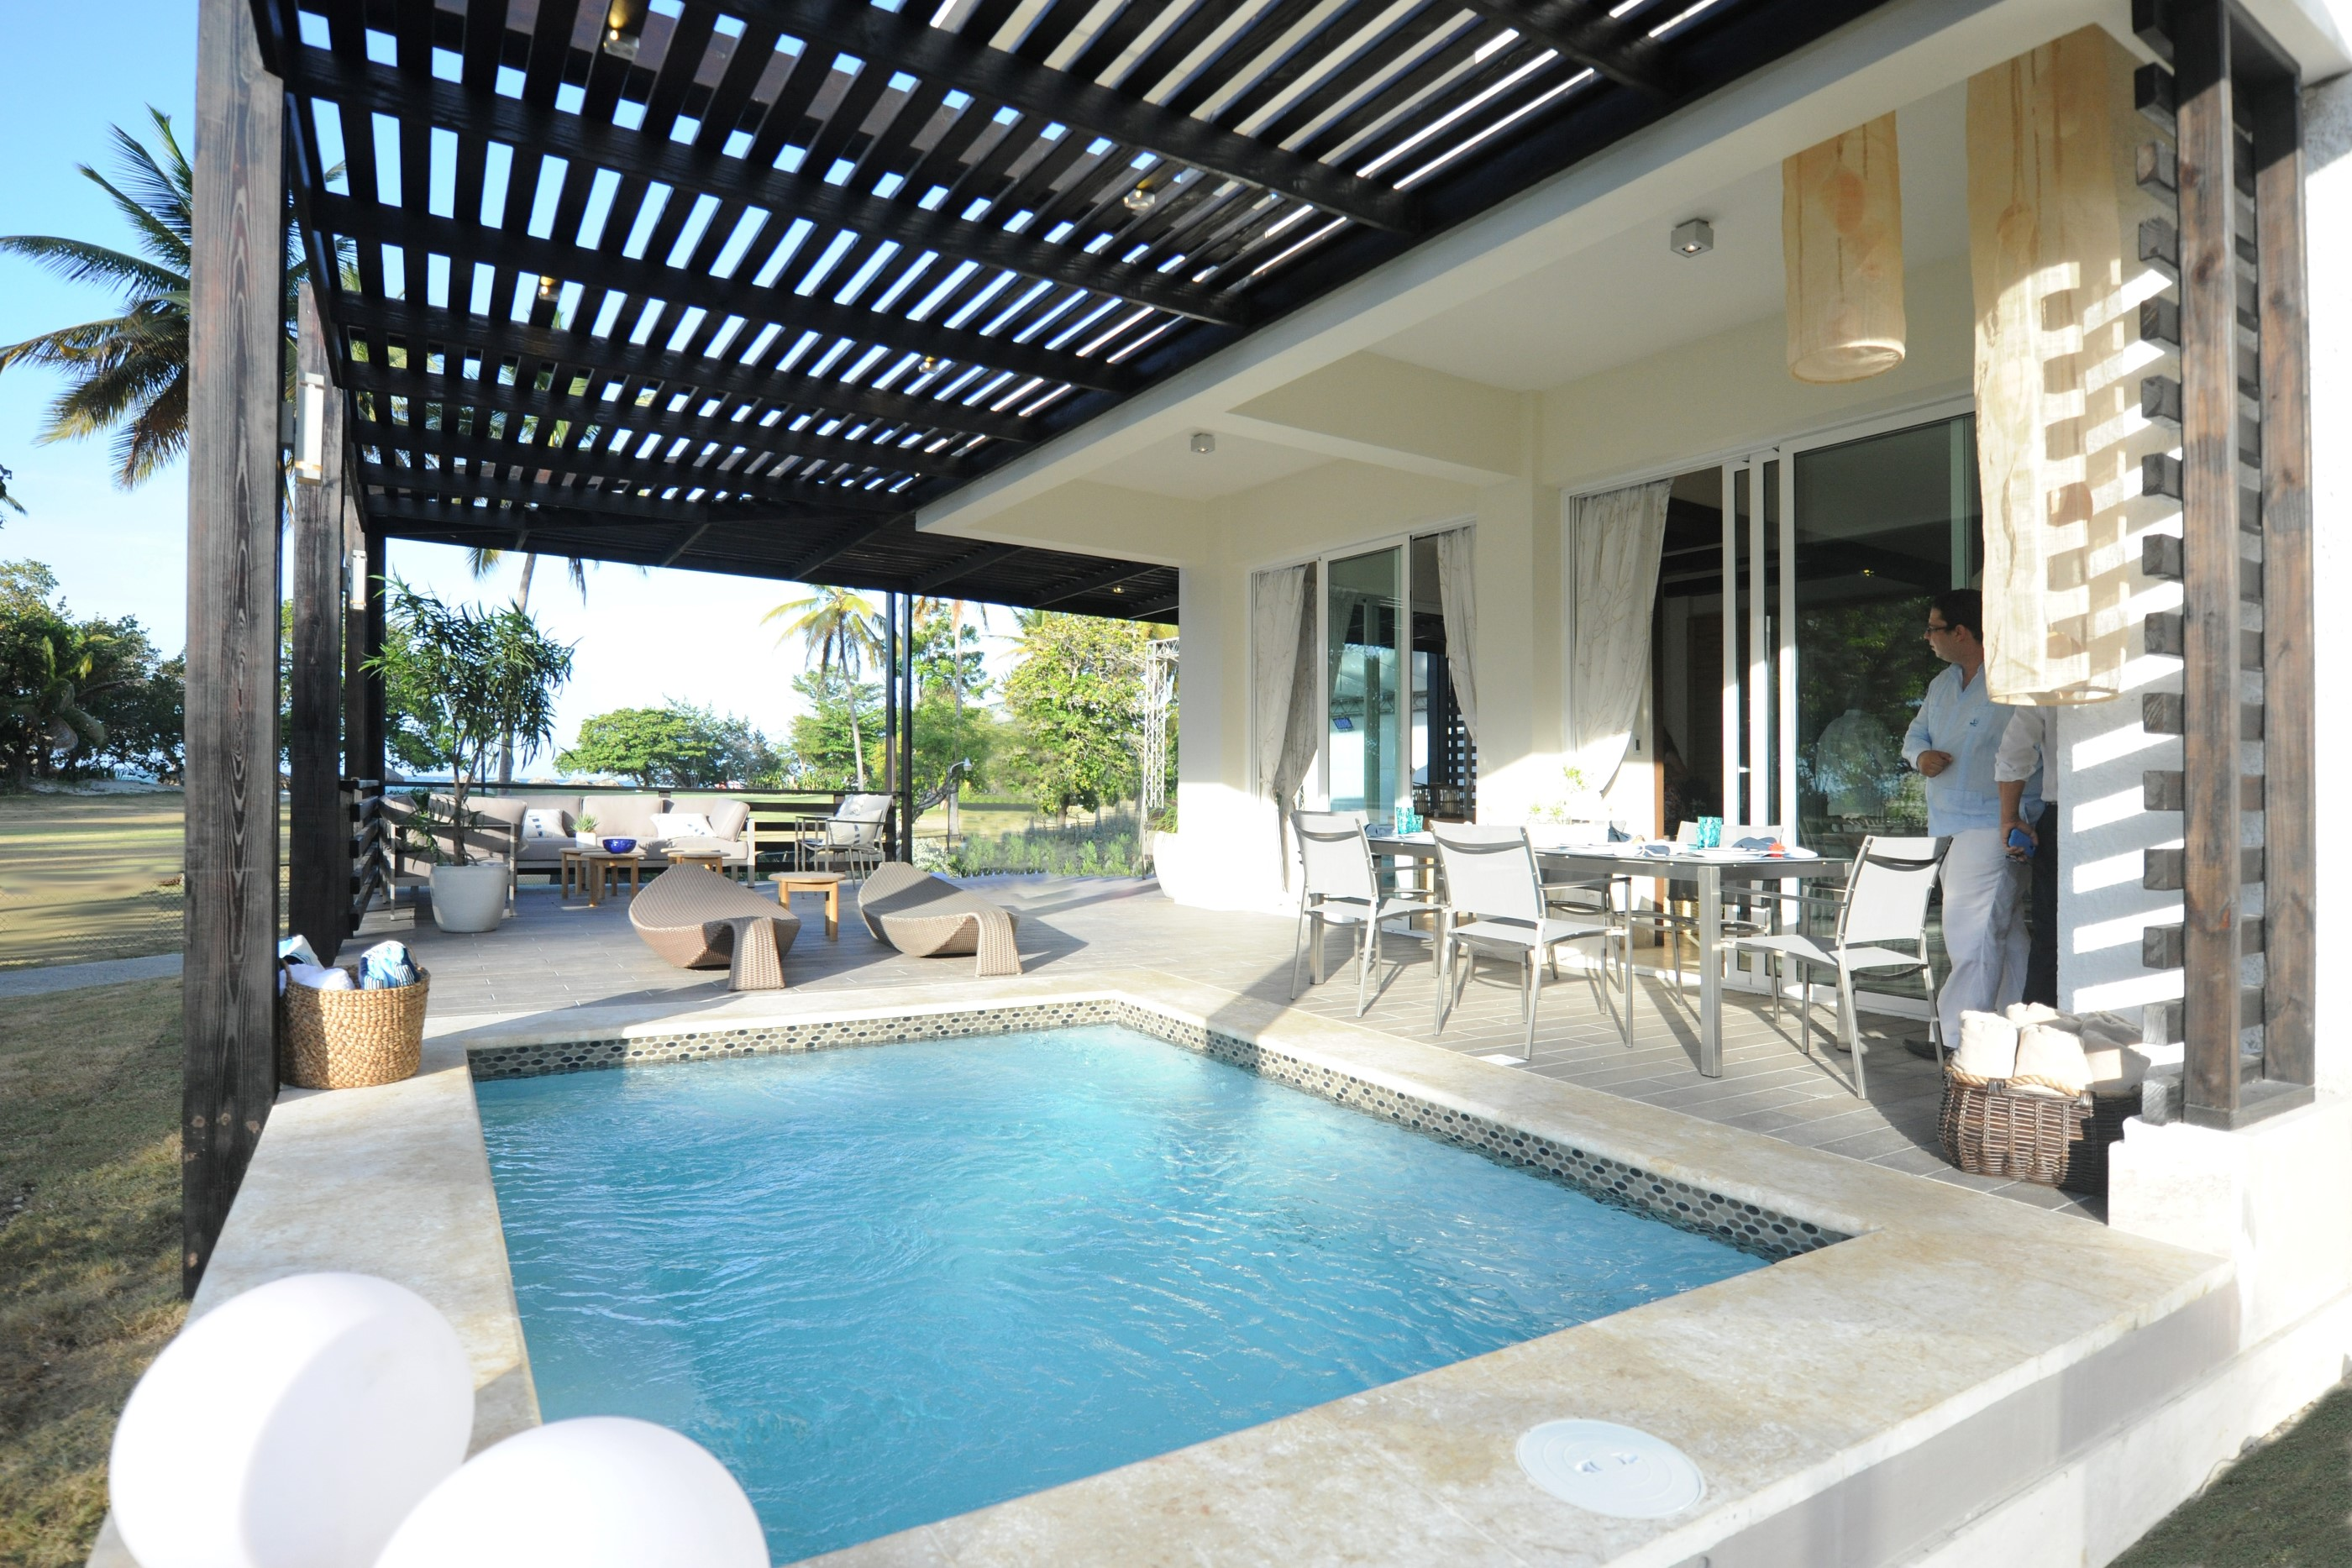 Blue Jacktar Condo Blue Cove Realtyblue Cove Realty